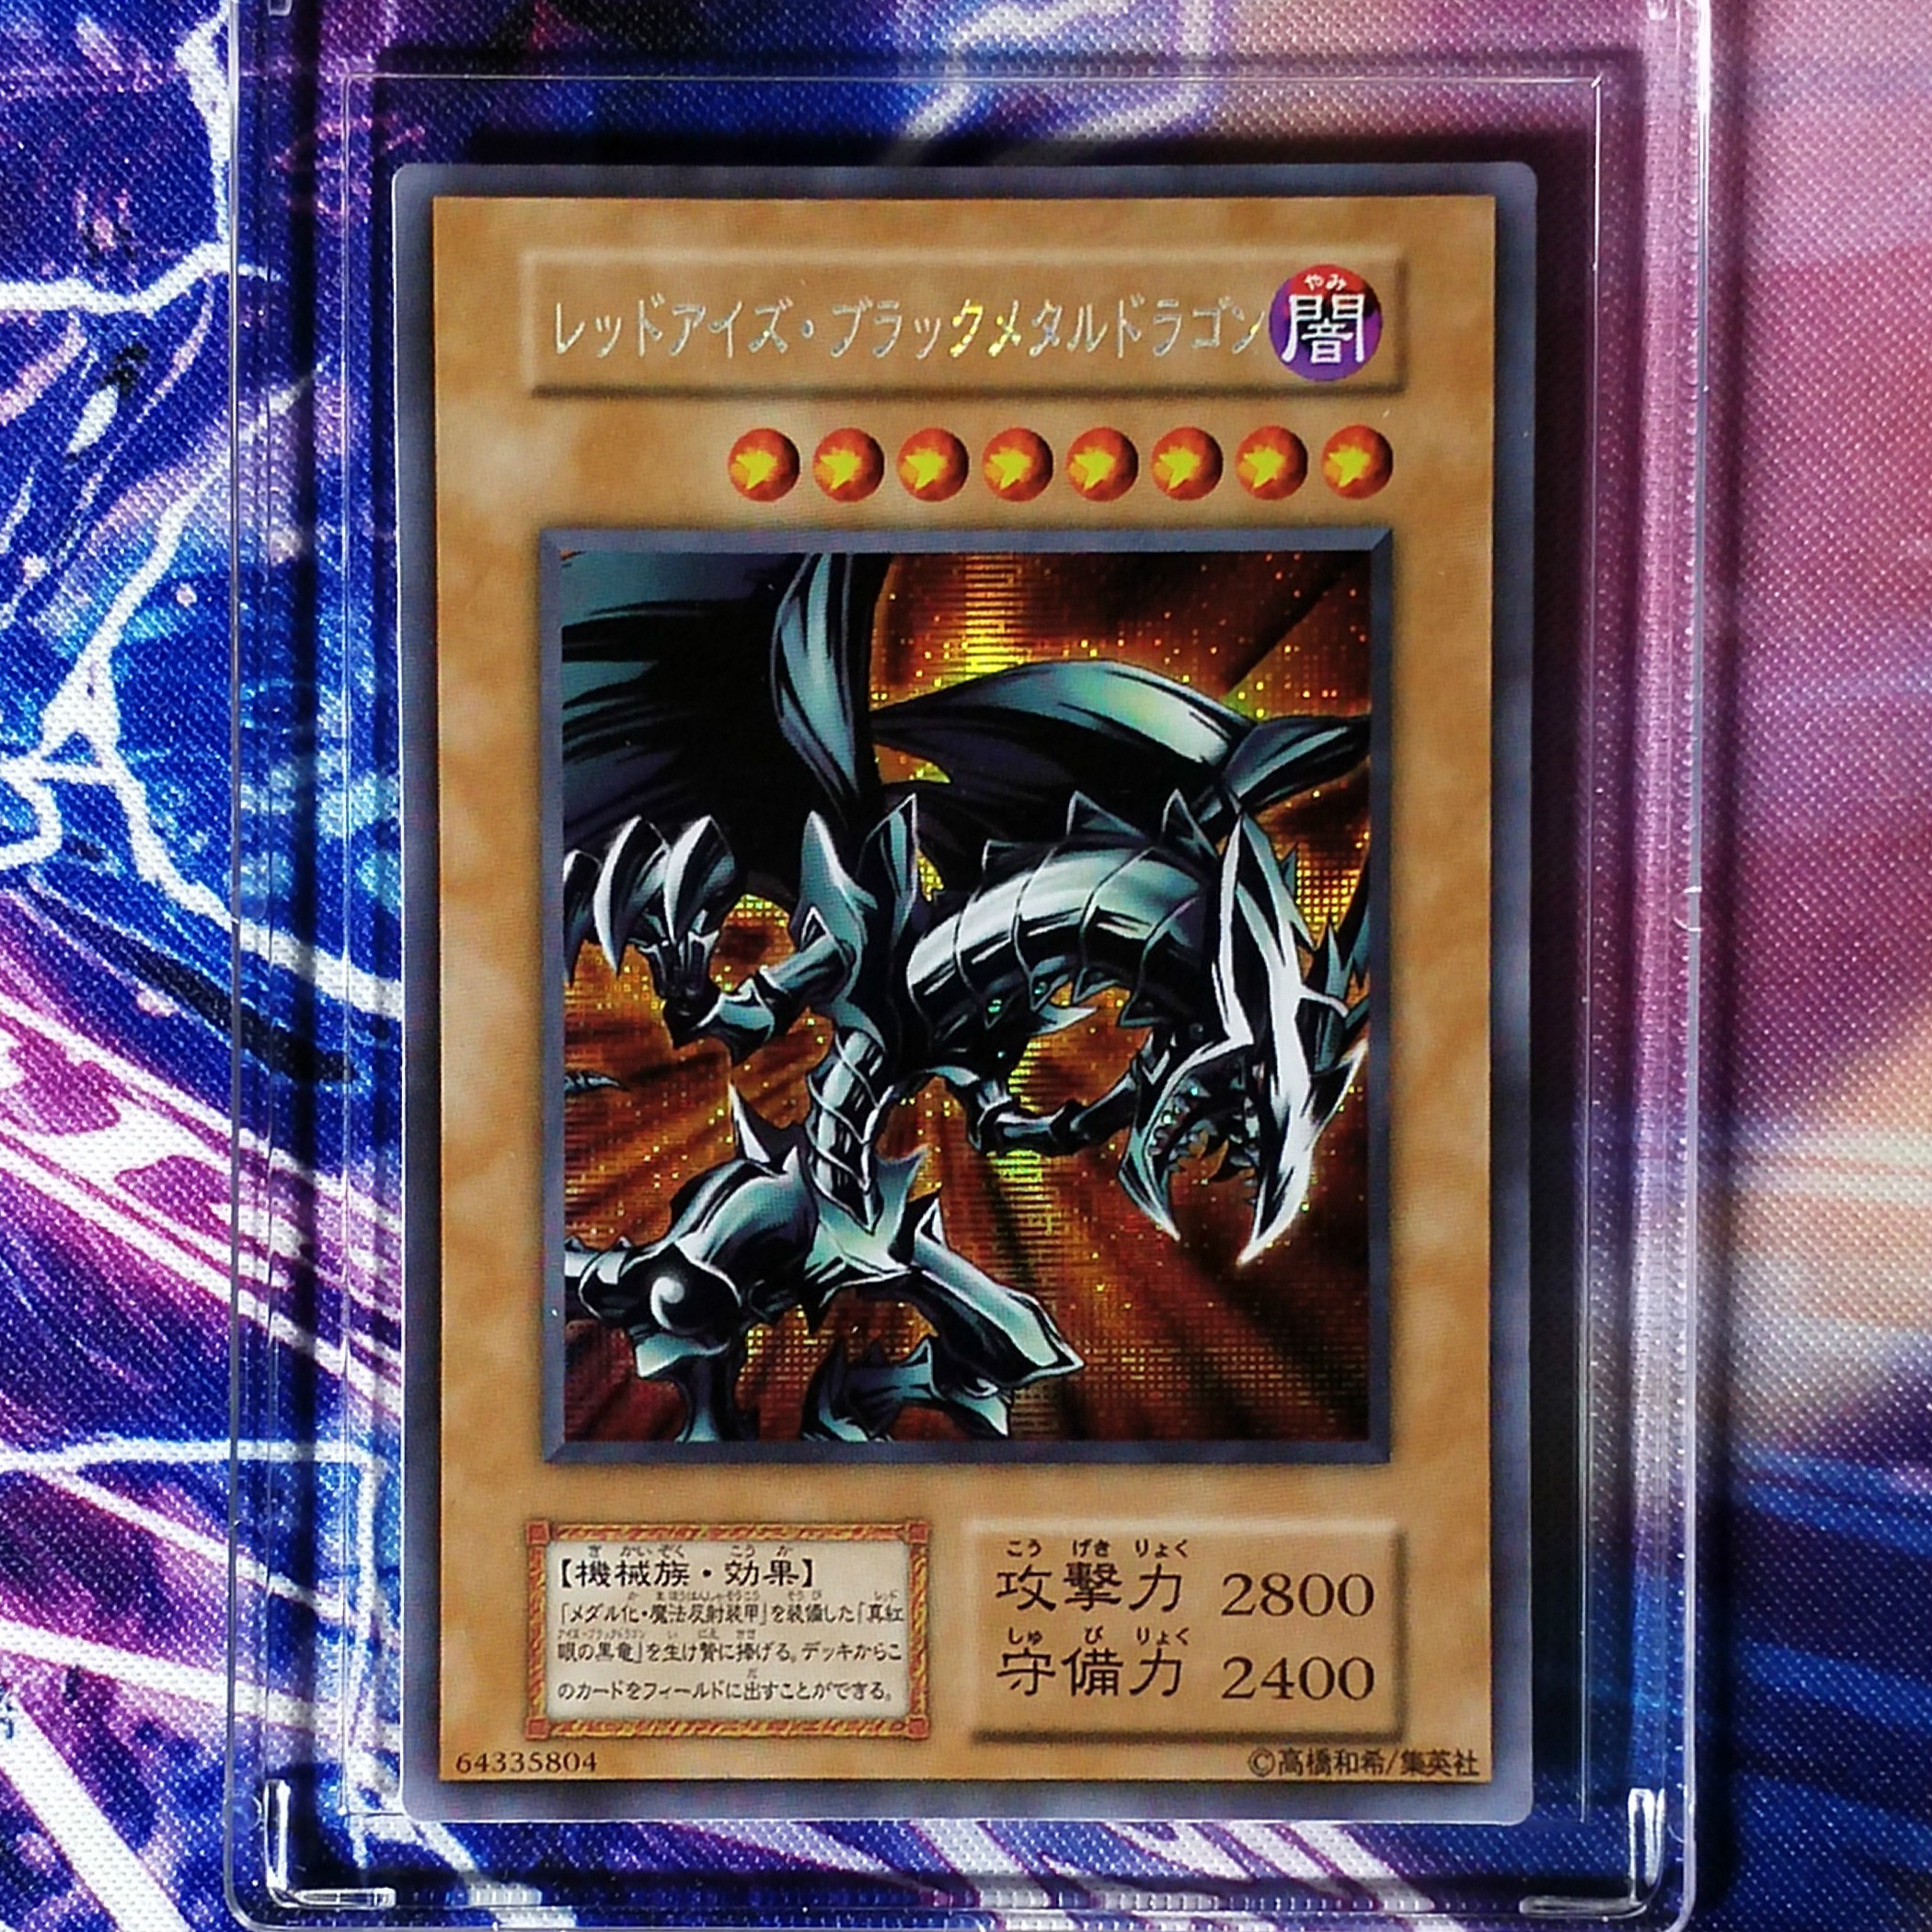 Yu Gi Oh Red-Eyes B. Dragon DIY Colorful Toys Hobbies Hobby Collectibles Game Collection Anime Cards